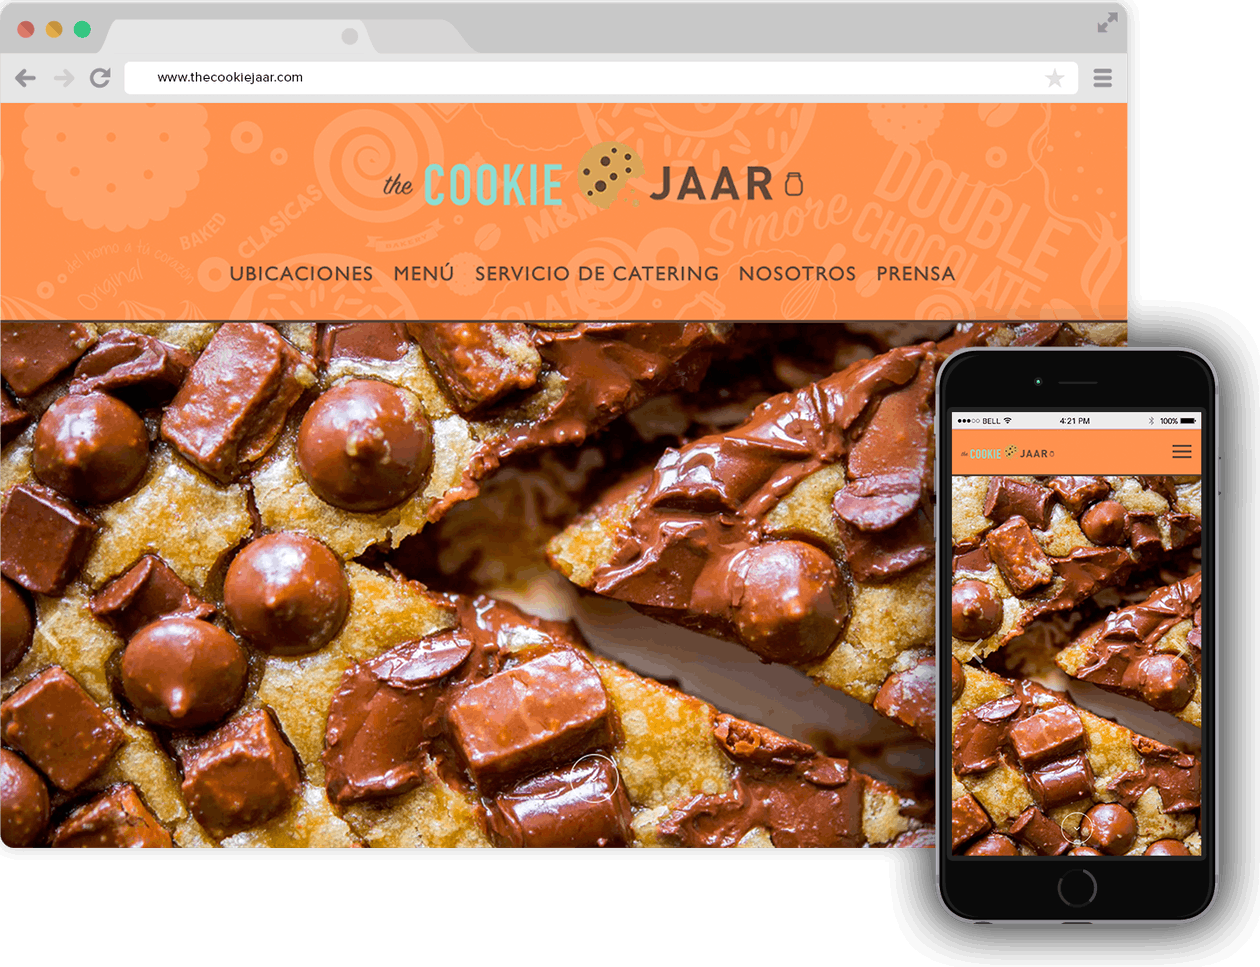 The Cookie Jaar hompage